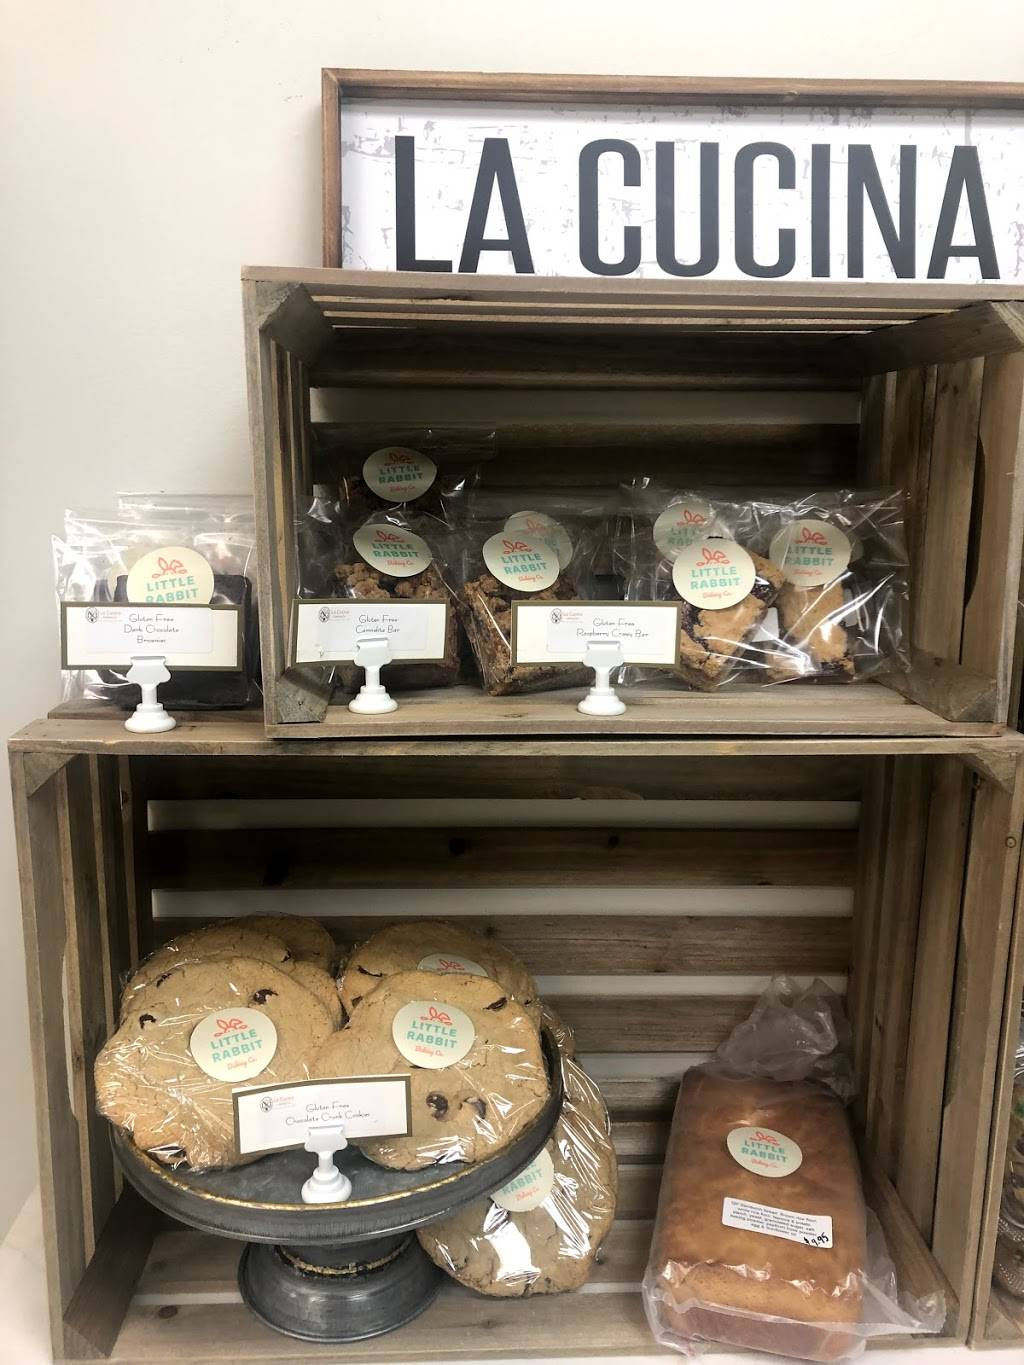 La Cucina Prepared Meals & Catering   restaurant   934 Boston Post Rd, Guilford, CT 06437, USA   2036895692 OR +1 203-689-5692